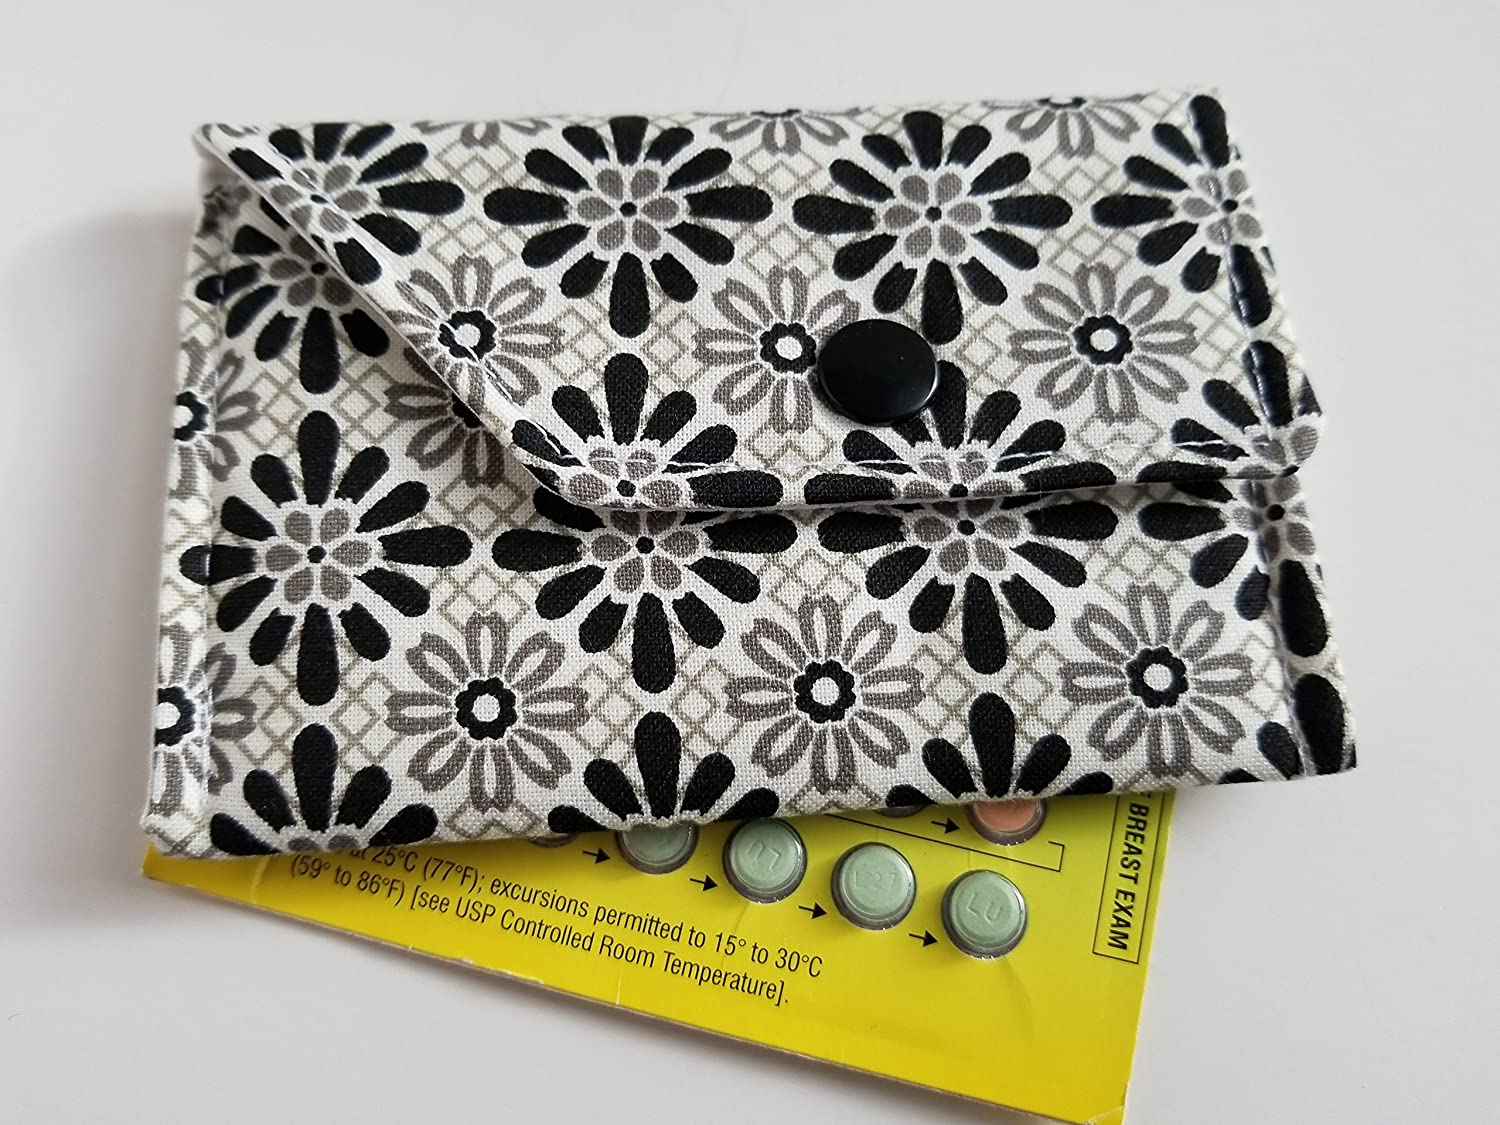 Birth Control Case Sleeve with Snap Closure and Optional Keychain Clip -Black and grey